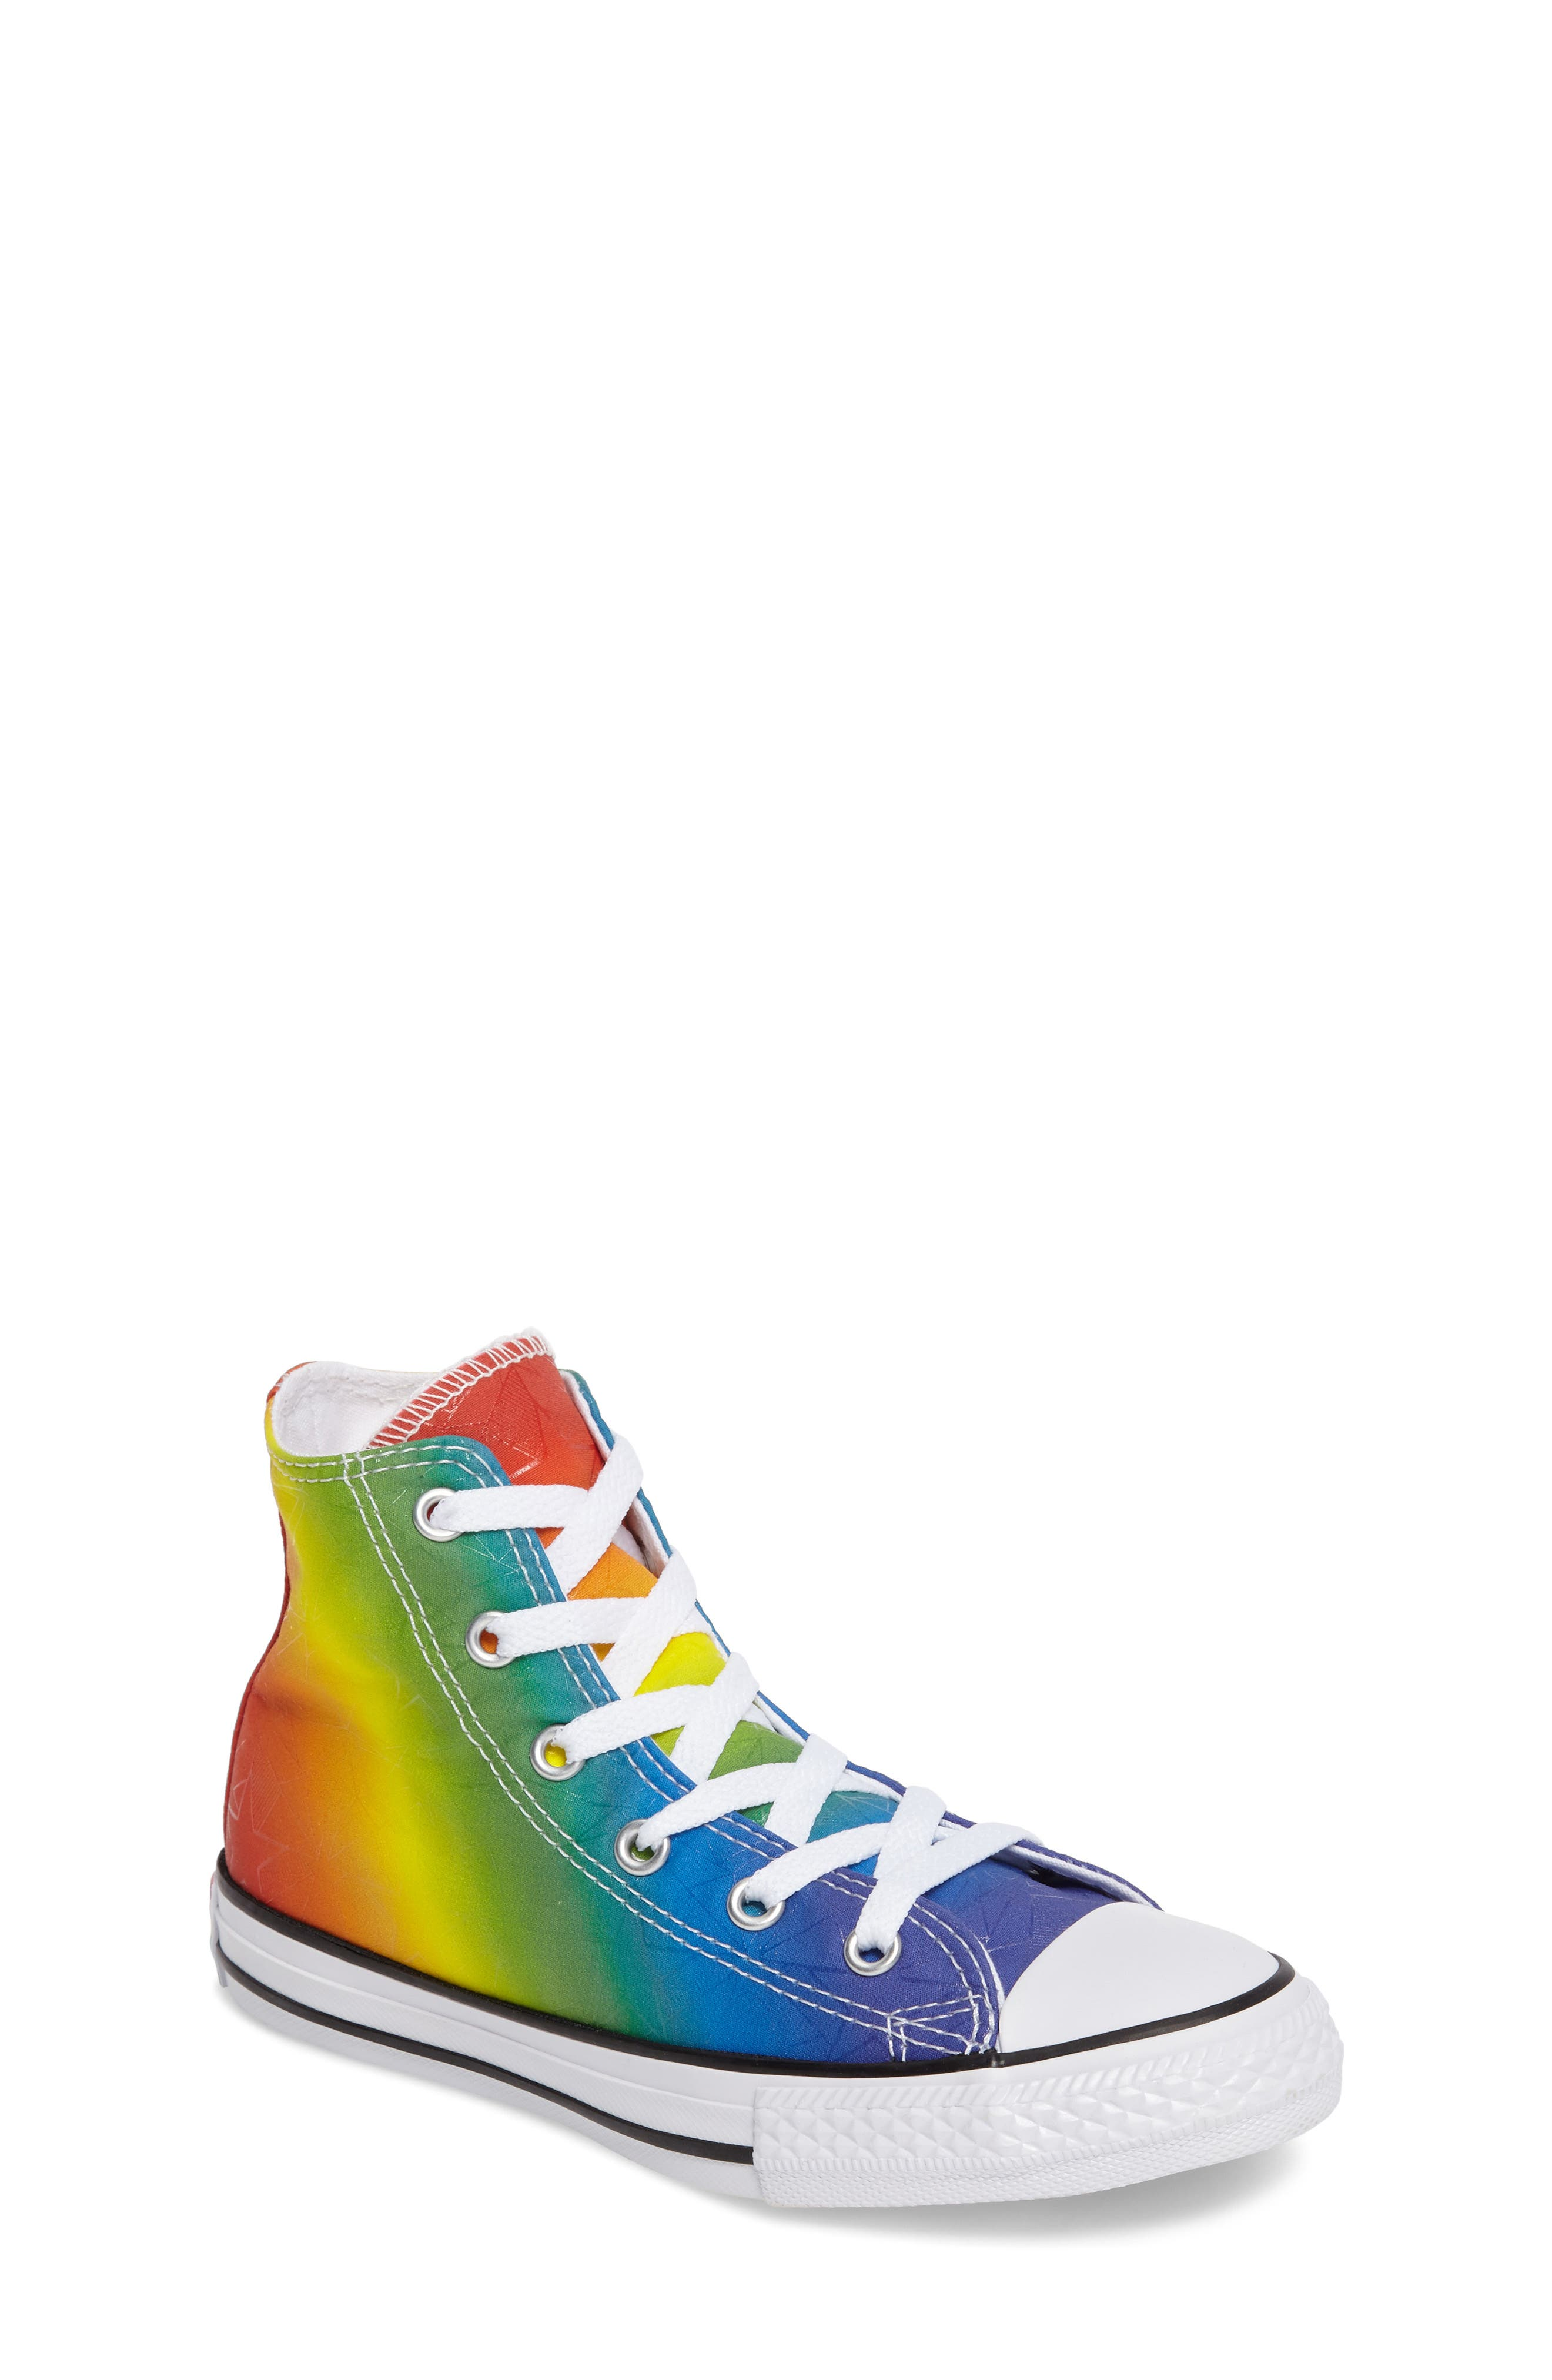 Chuck Taylor<sup>®</sup> All Star<sup>®</sup> Pride High Top Sneaker, Main, color, 400